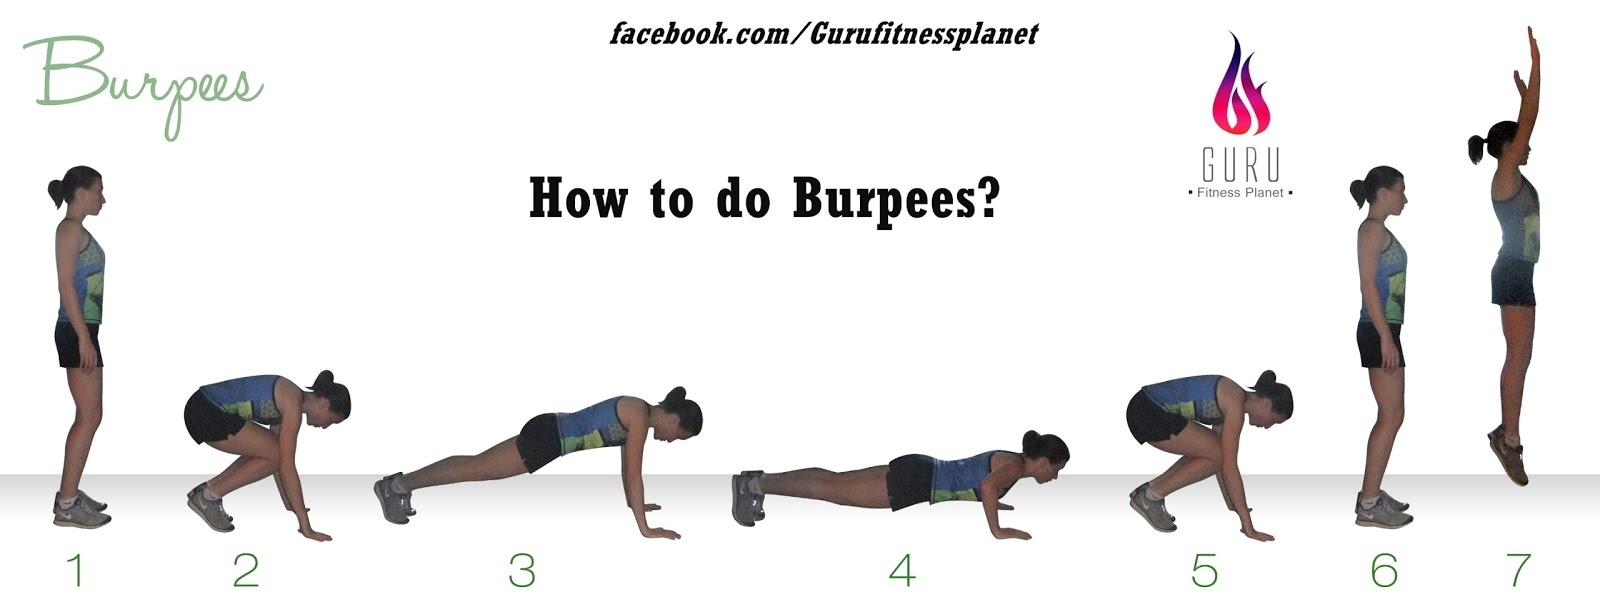 Article # 530. How to do Burpees?